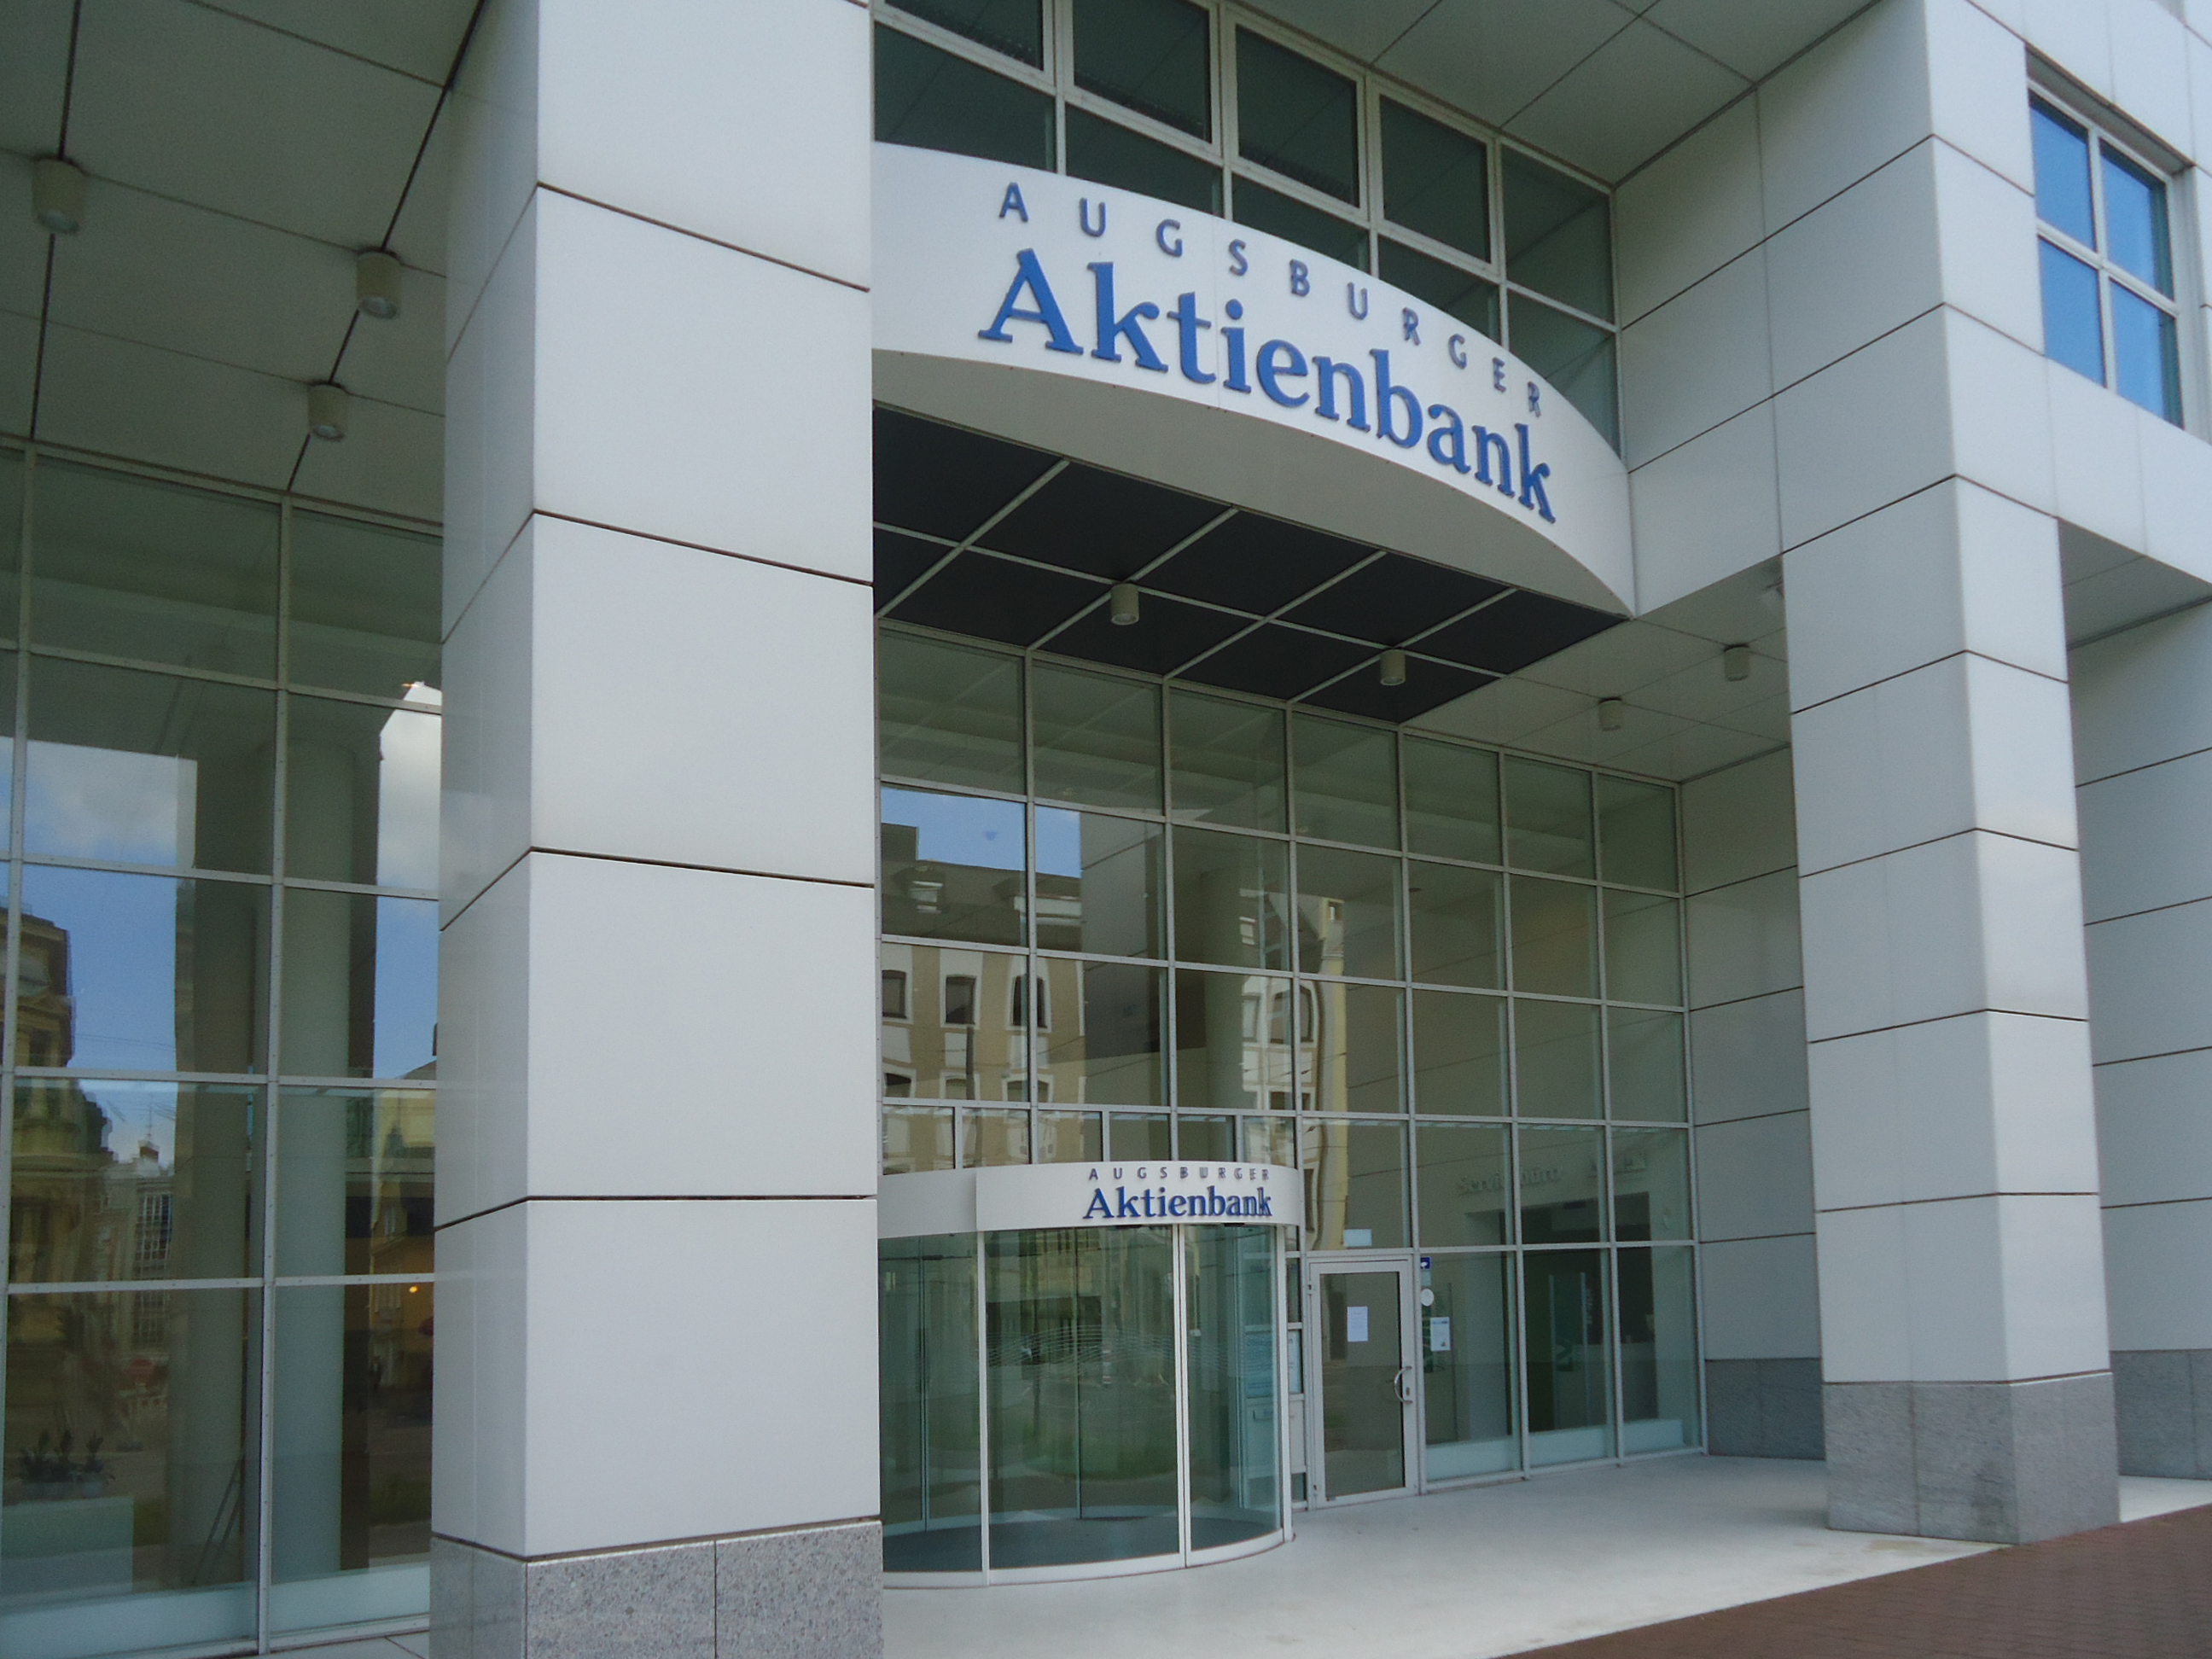 Augsburger Aktienbank AG was founded in The Company's line of business includes the operation of commercial trade4target.info: